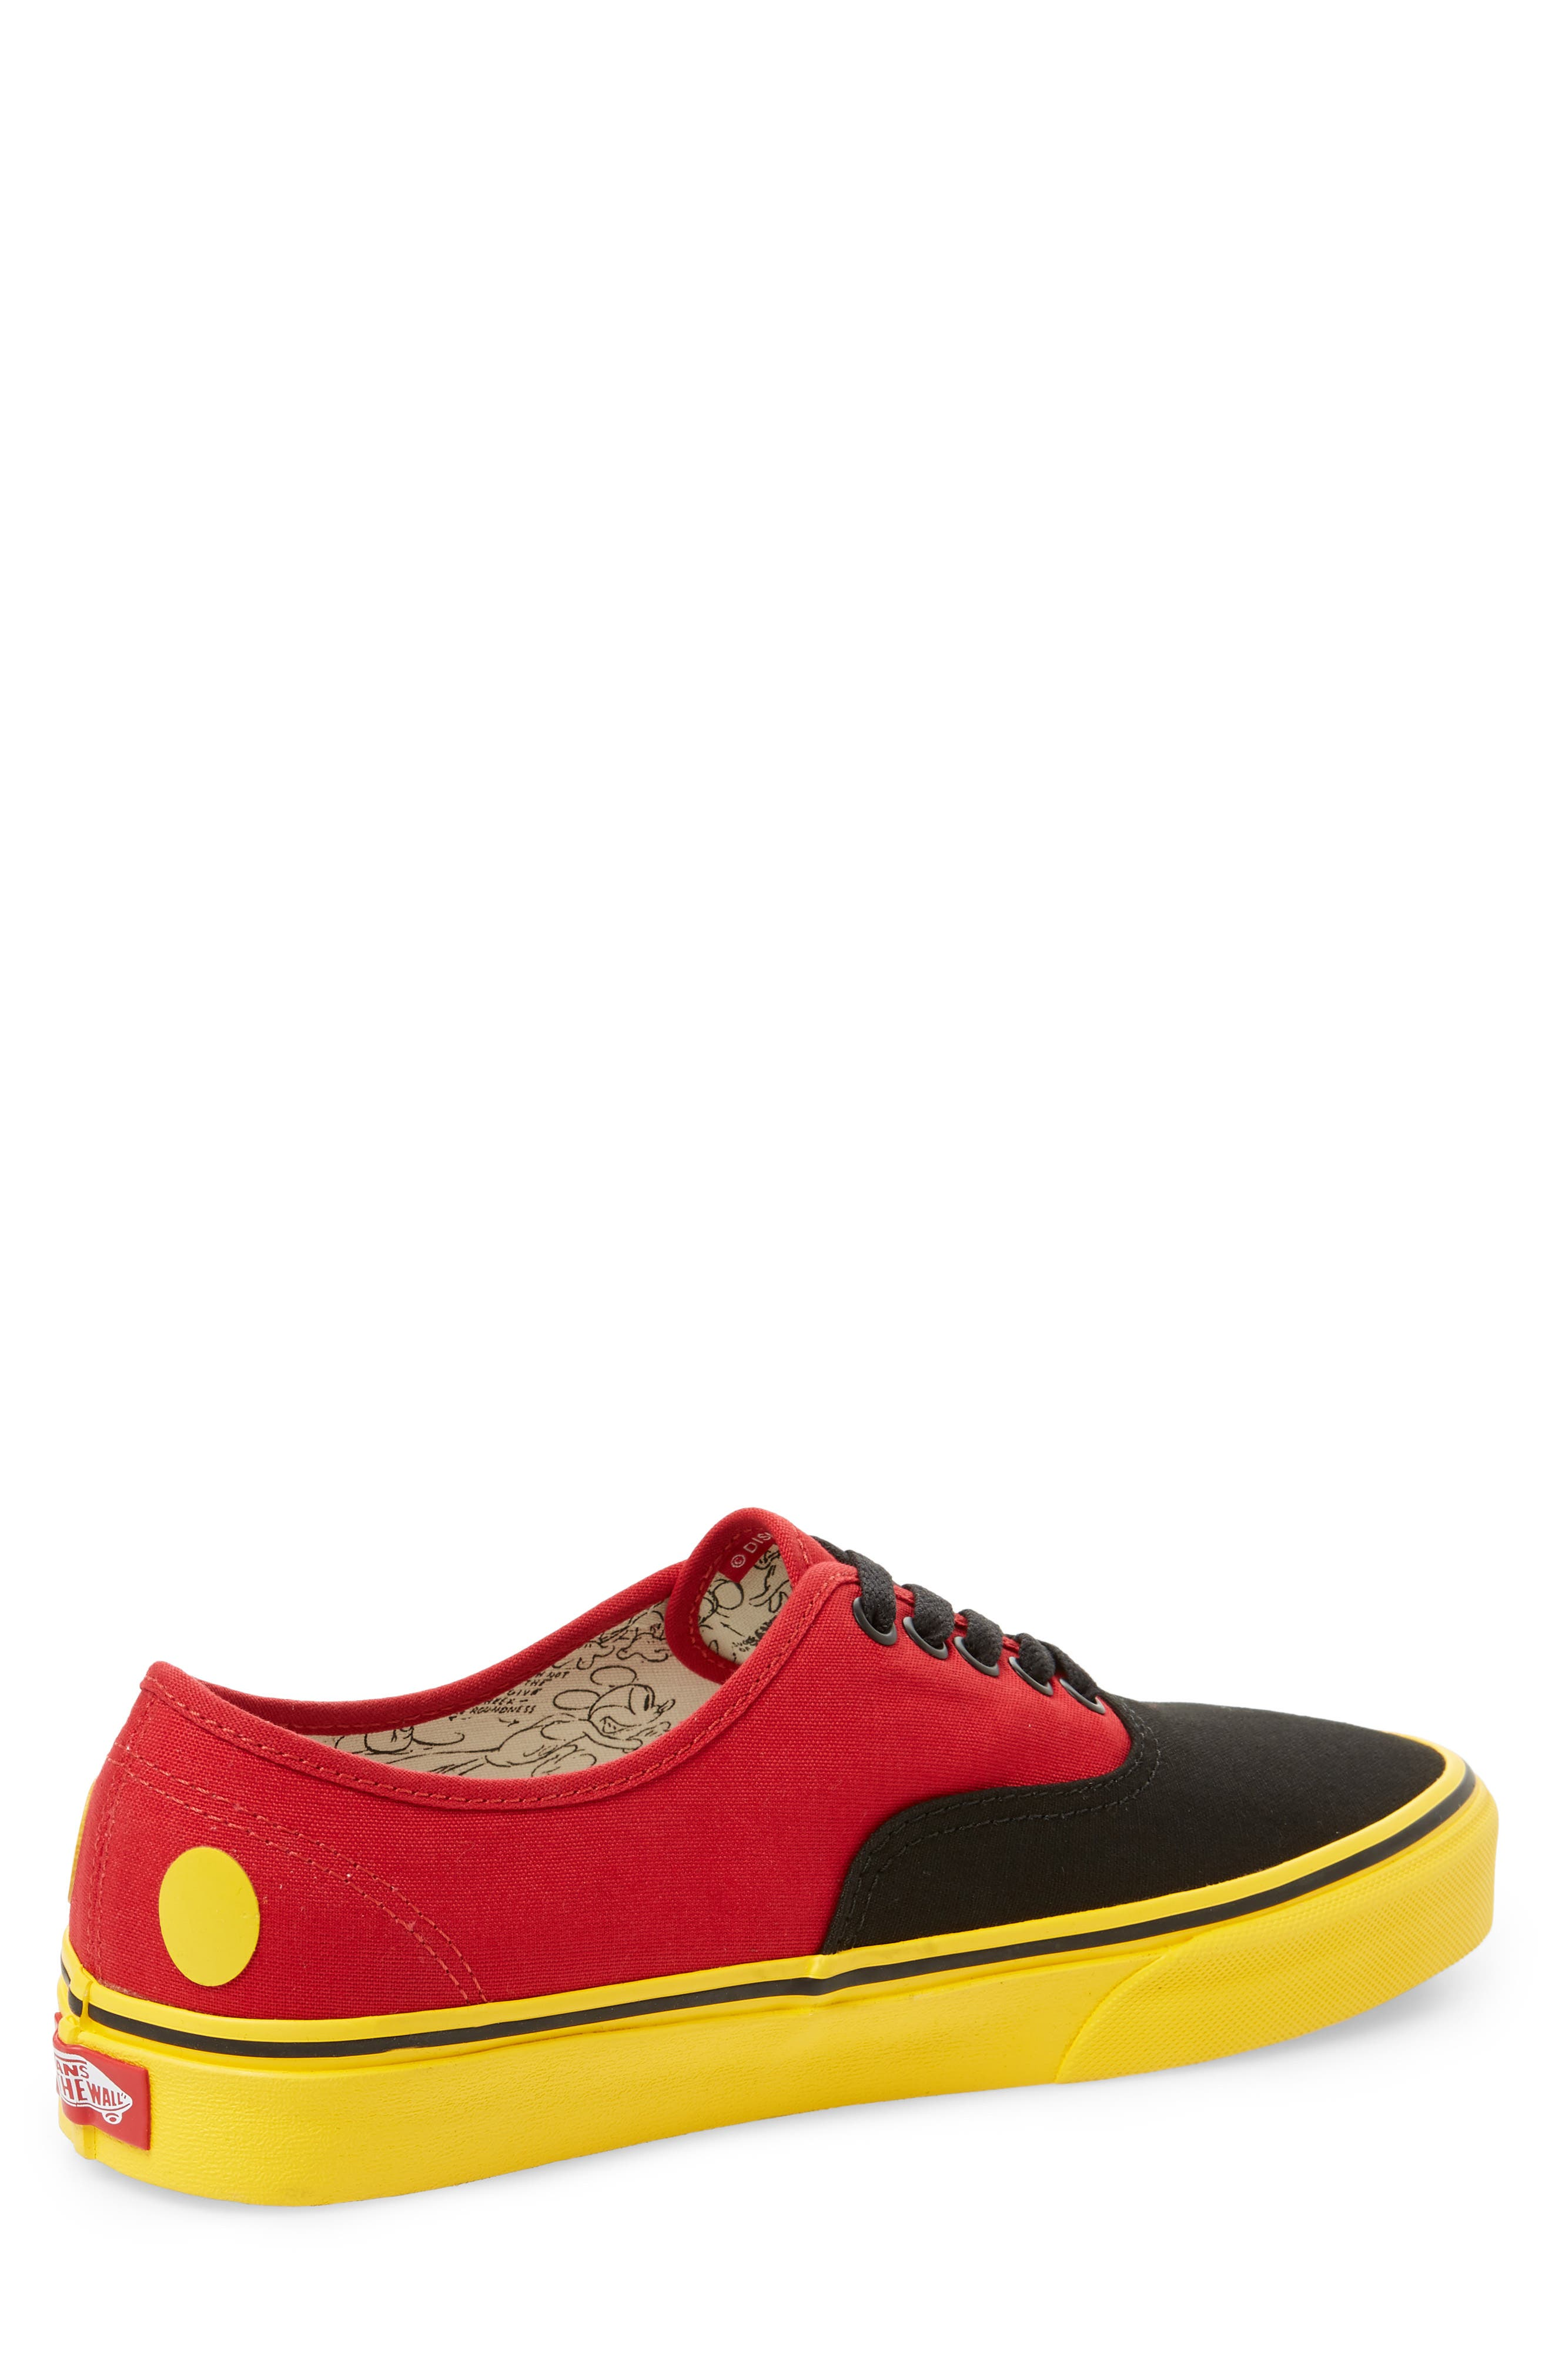 x Disney<sup>®</sup> Authentic Low Top Sneaker,                             Alternate thumbnail 2, color,                             DISNEY MICKEY/ RED/ YELLOW